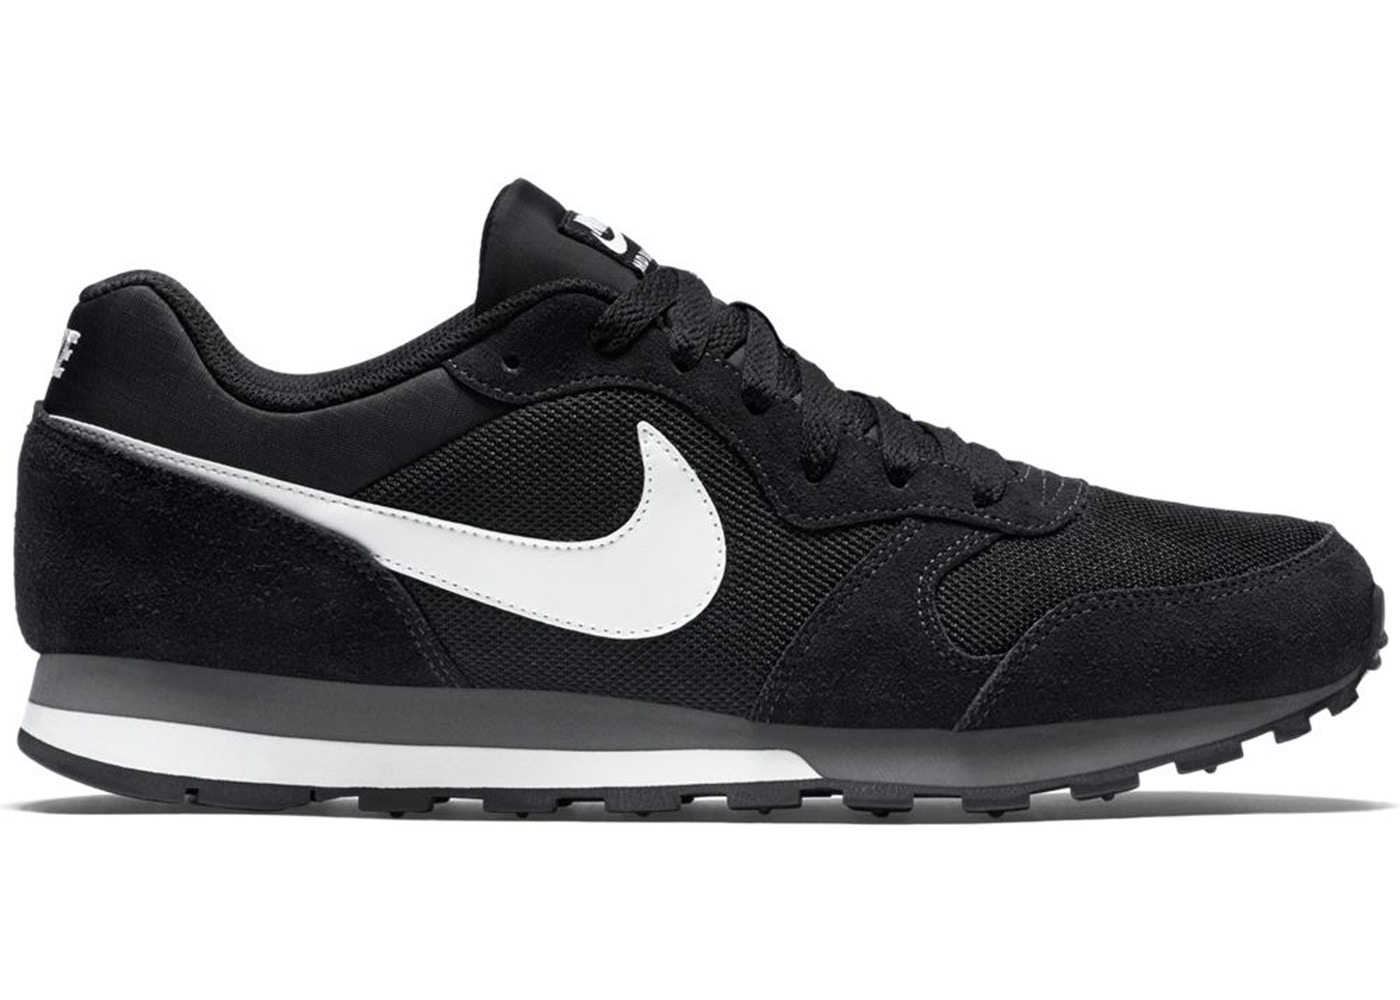 a44074c80fcfb Sell. or Ask. Size: 10.5. View All Bids. Nike MD Runner 2 Black White